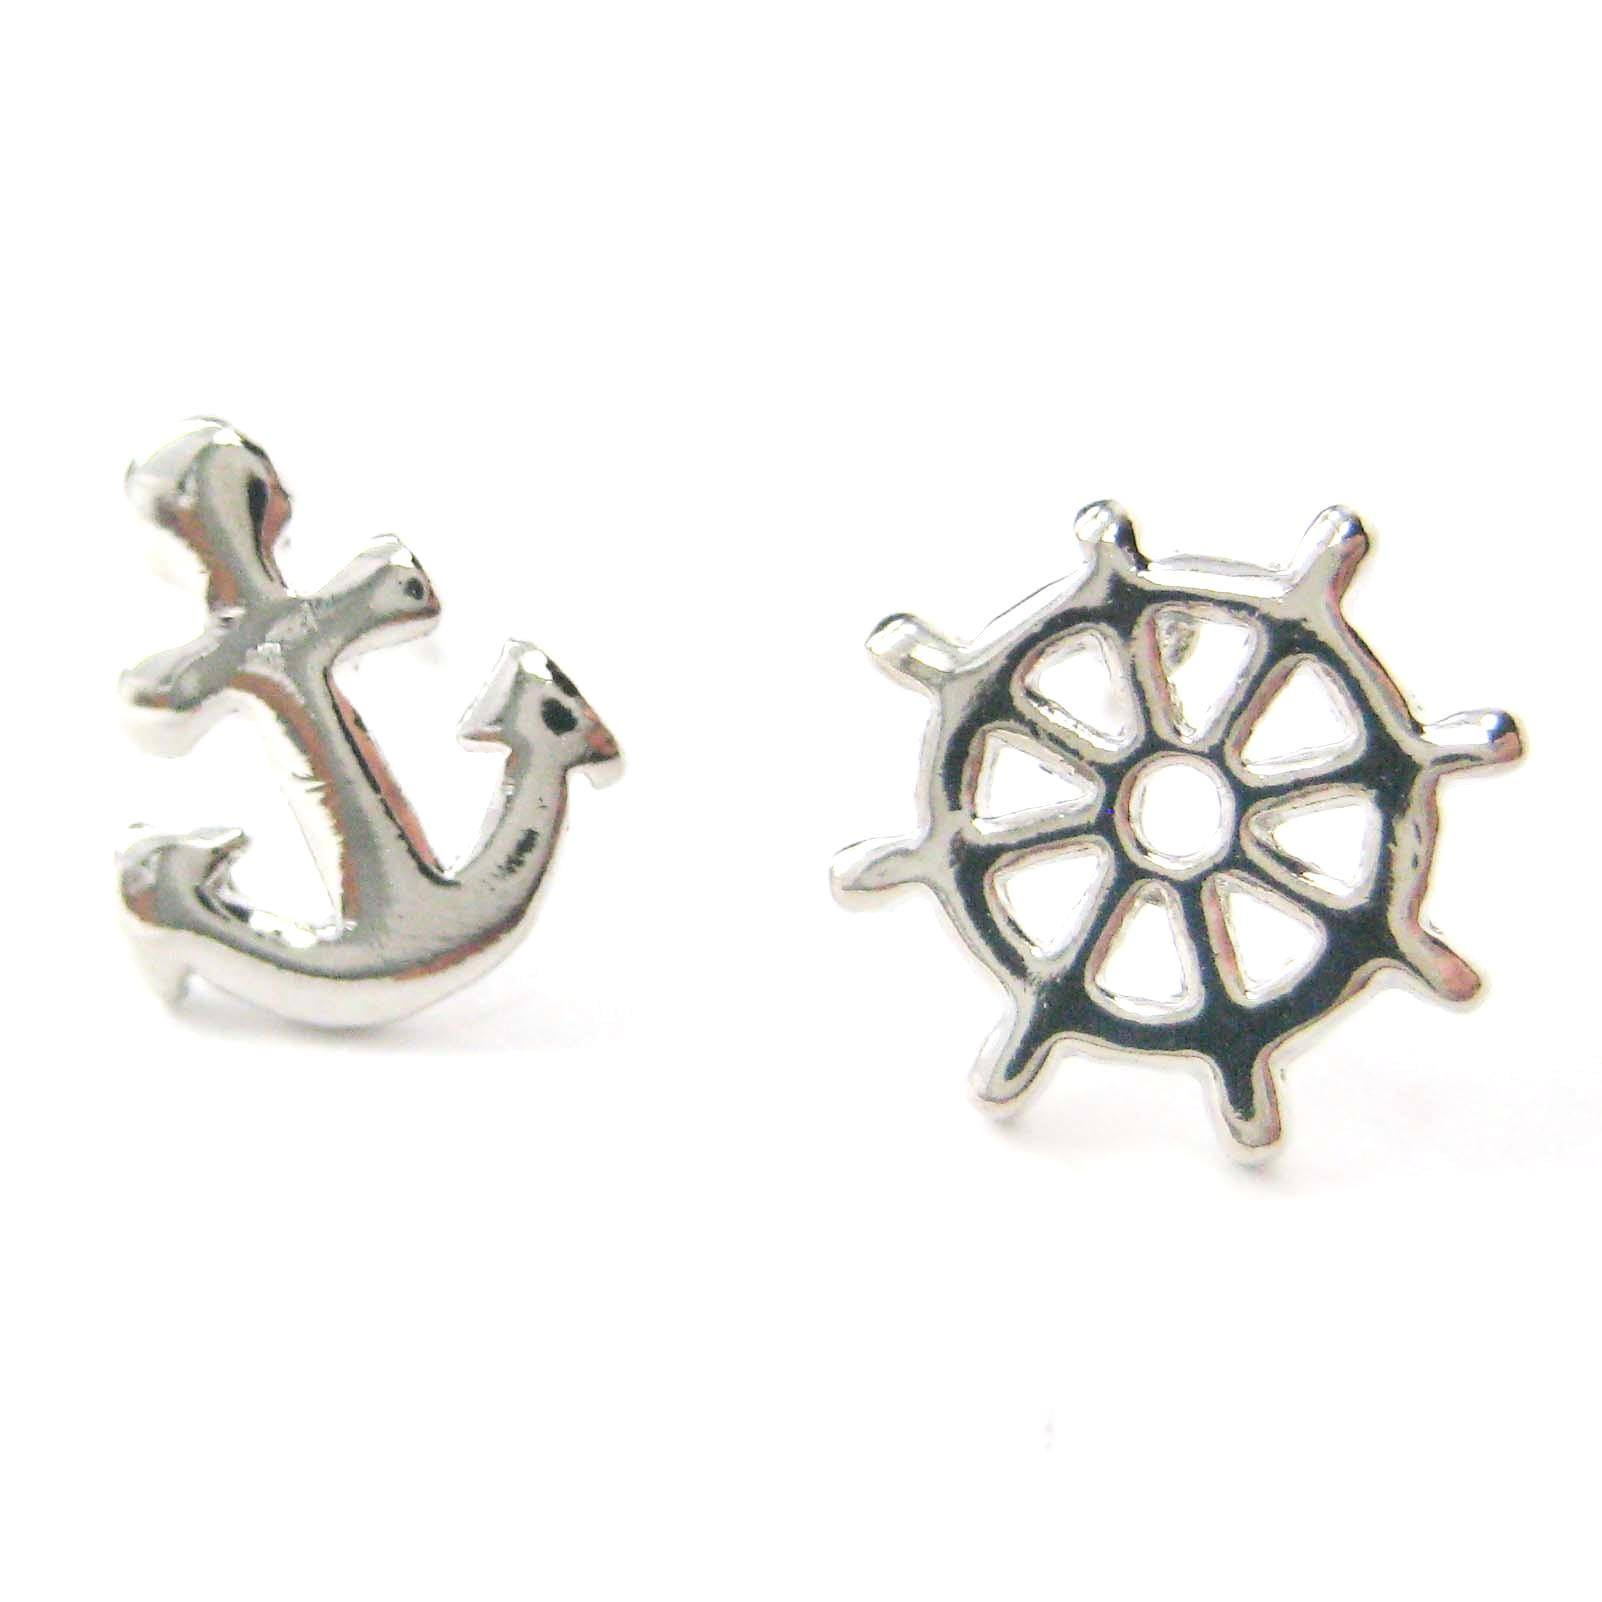 small-anchor-and-wheel-nautical-stud-earrings-in-silver